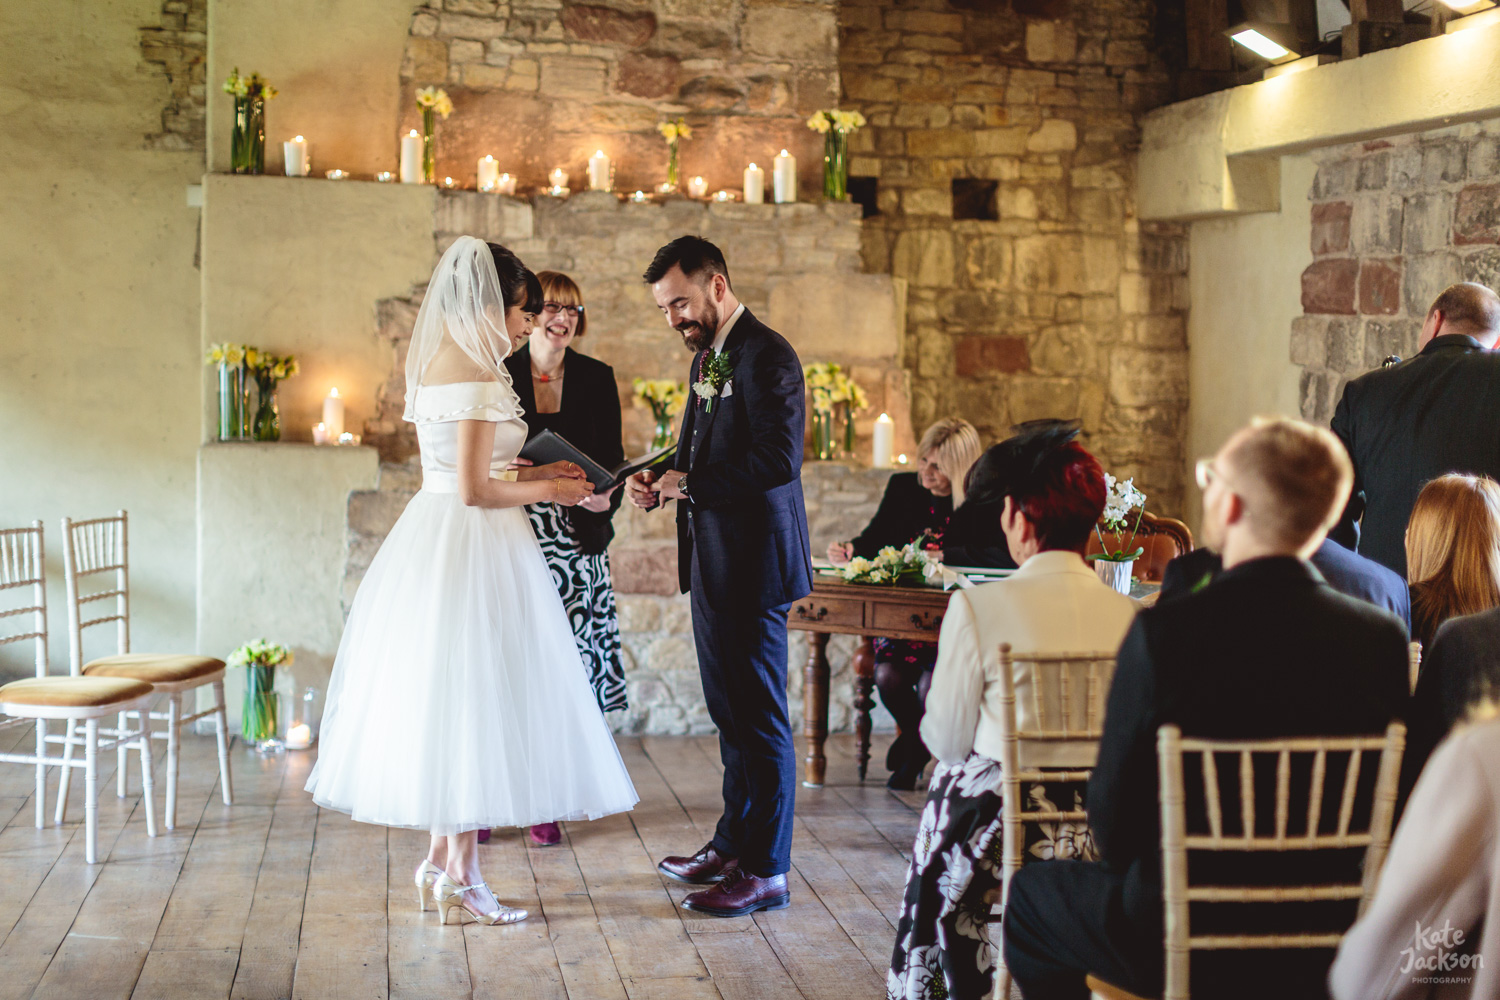 Exchanging Rings - Quirky Wedding at Blackfriars Priory Gloucester